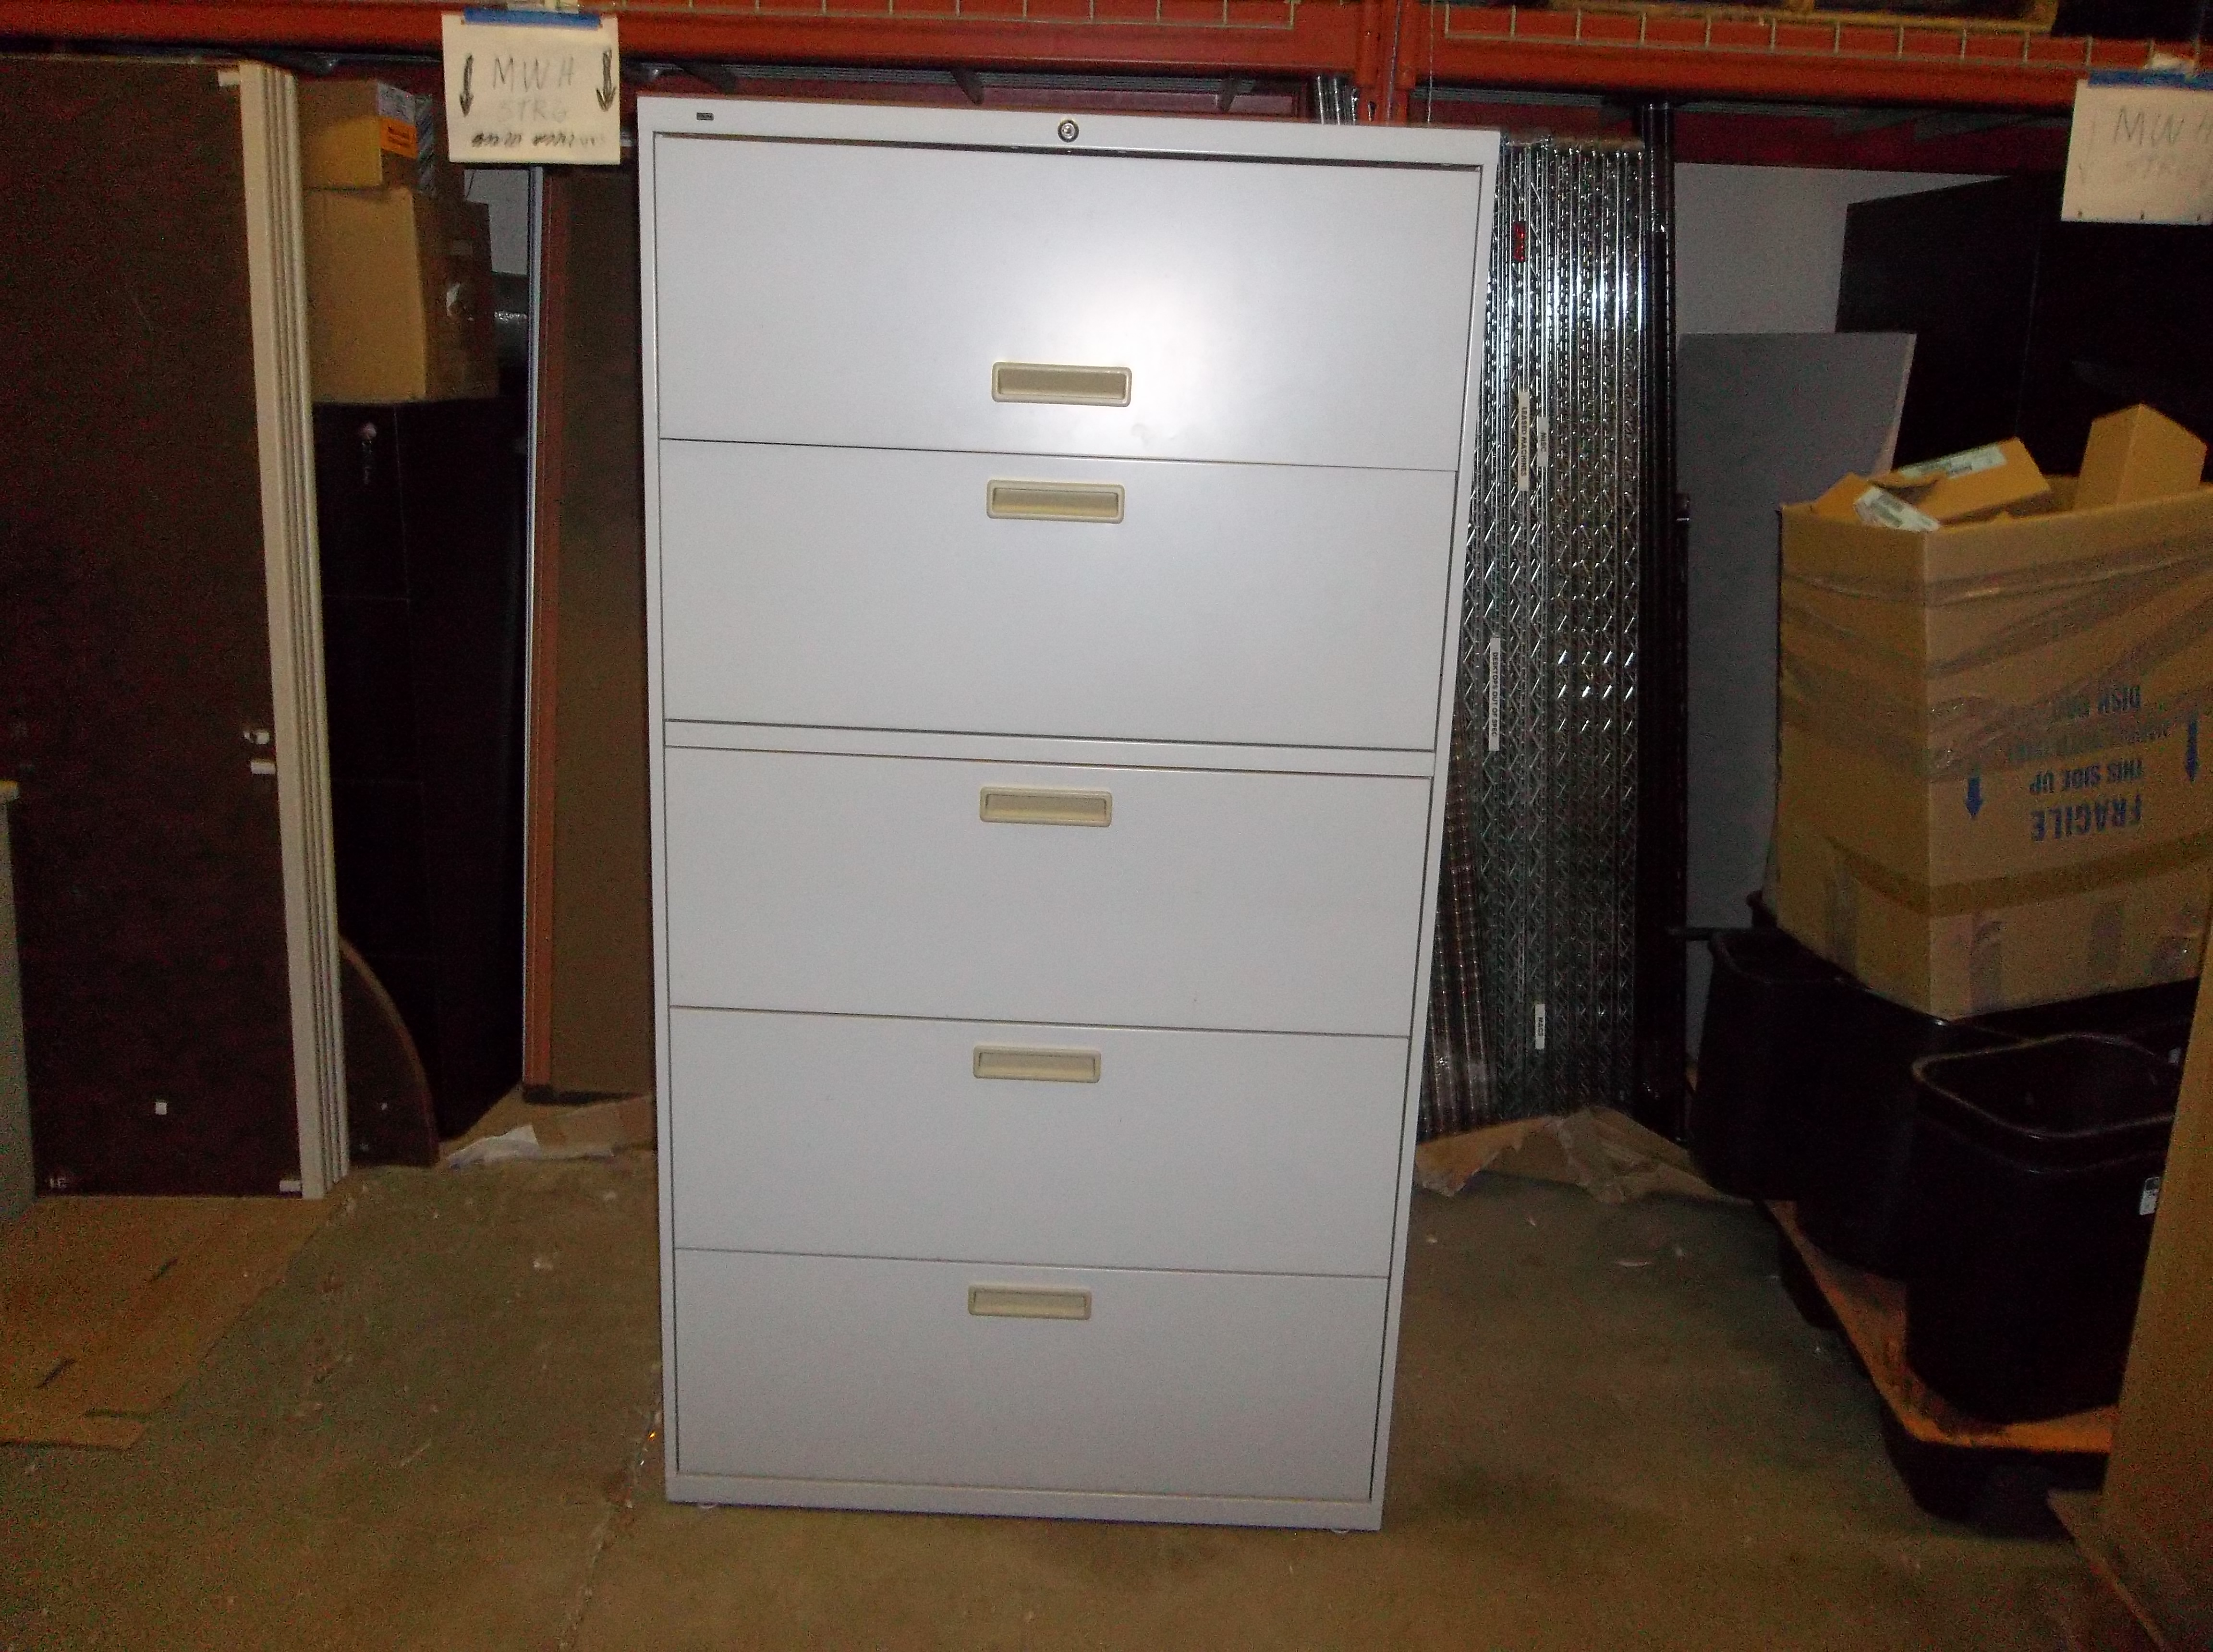 stow amazoncom lateral cabinets rolling model big poppin fascinating drawer white file hon cabinet drawers